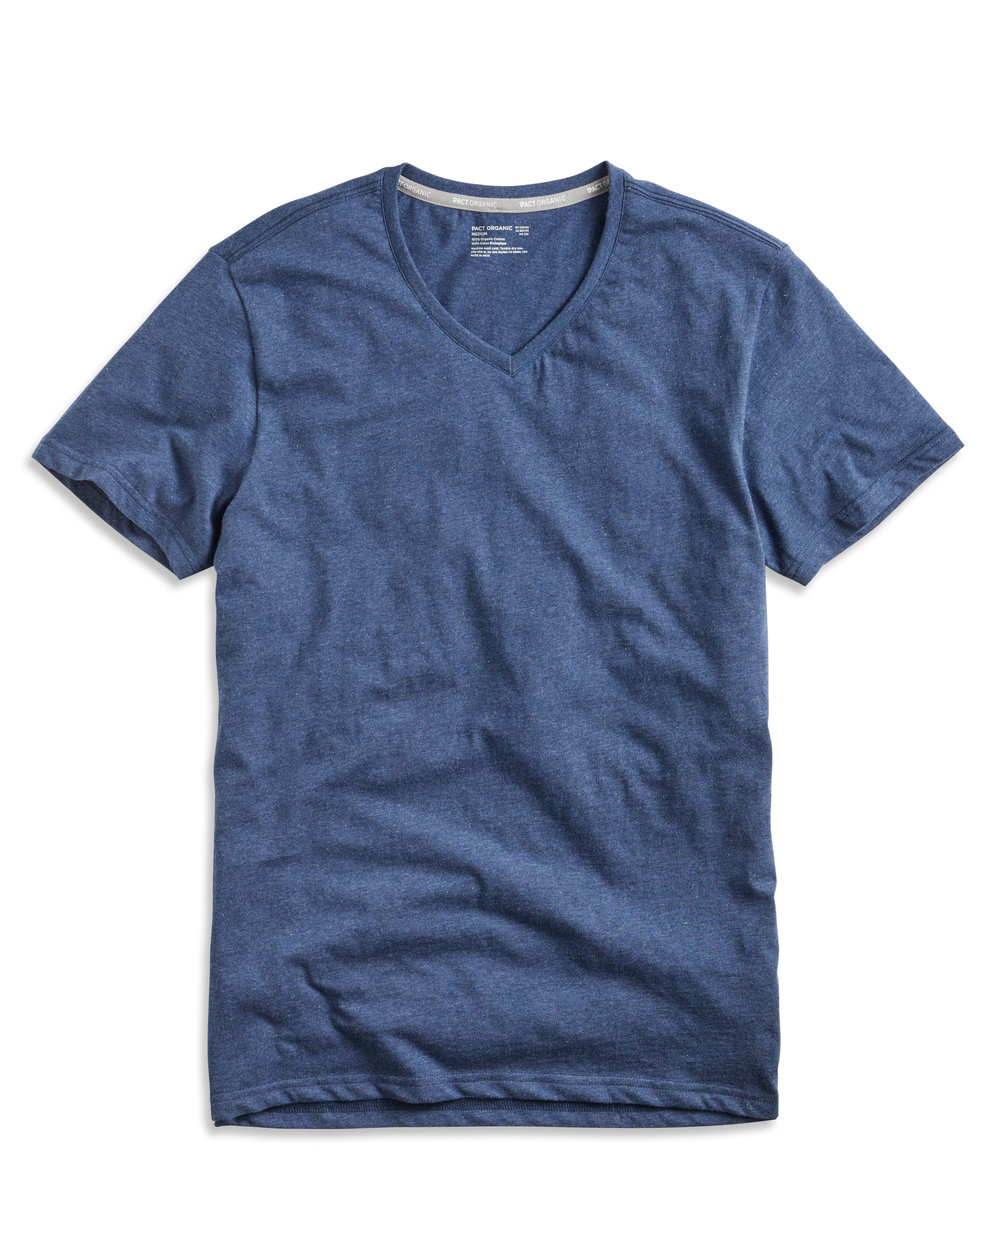 Men's Casual V-Neck